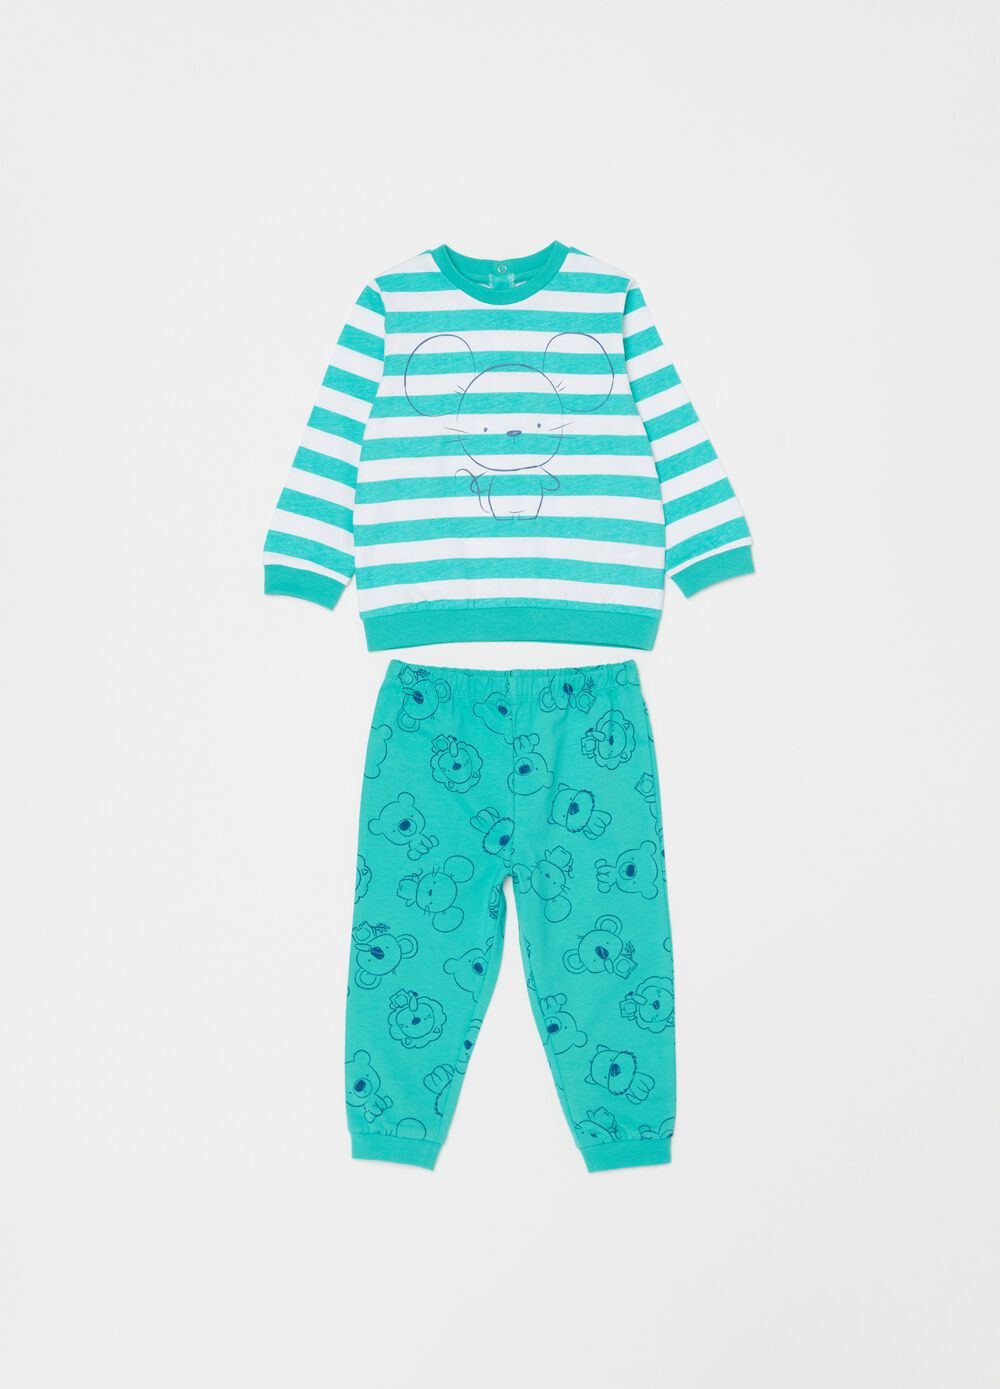 Pyjamas with striped pattern and mouse print